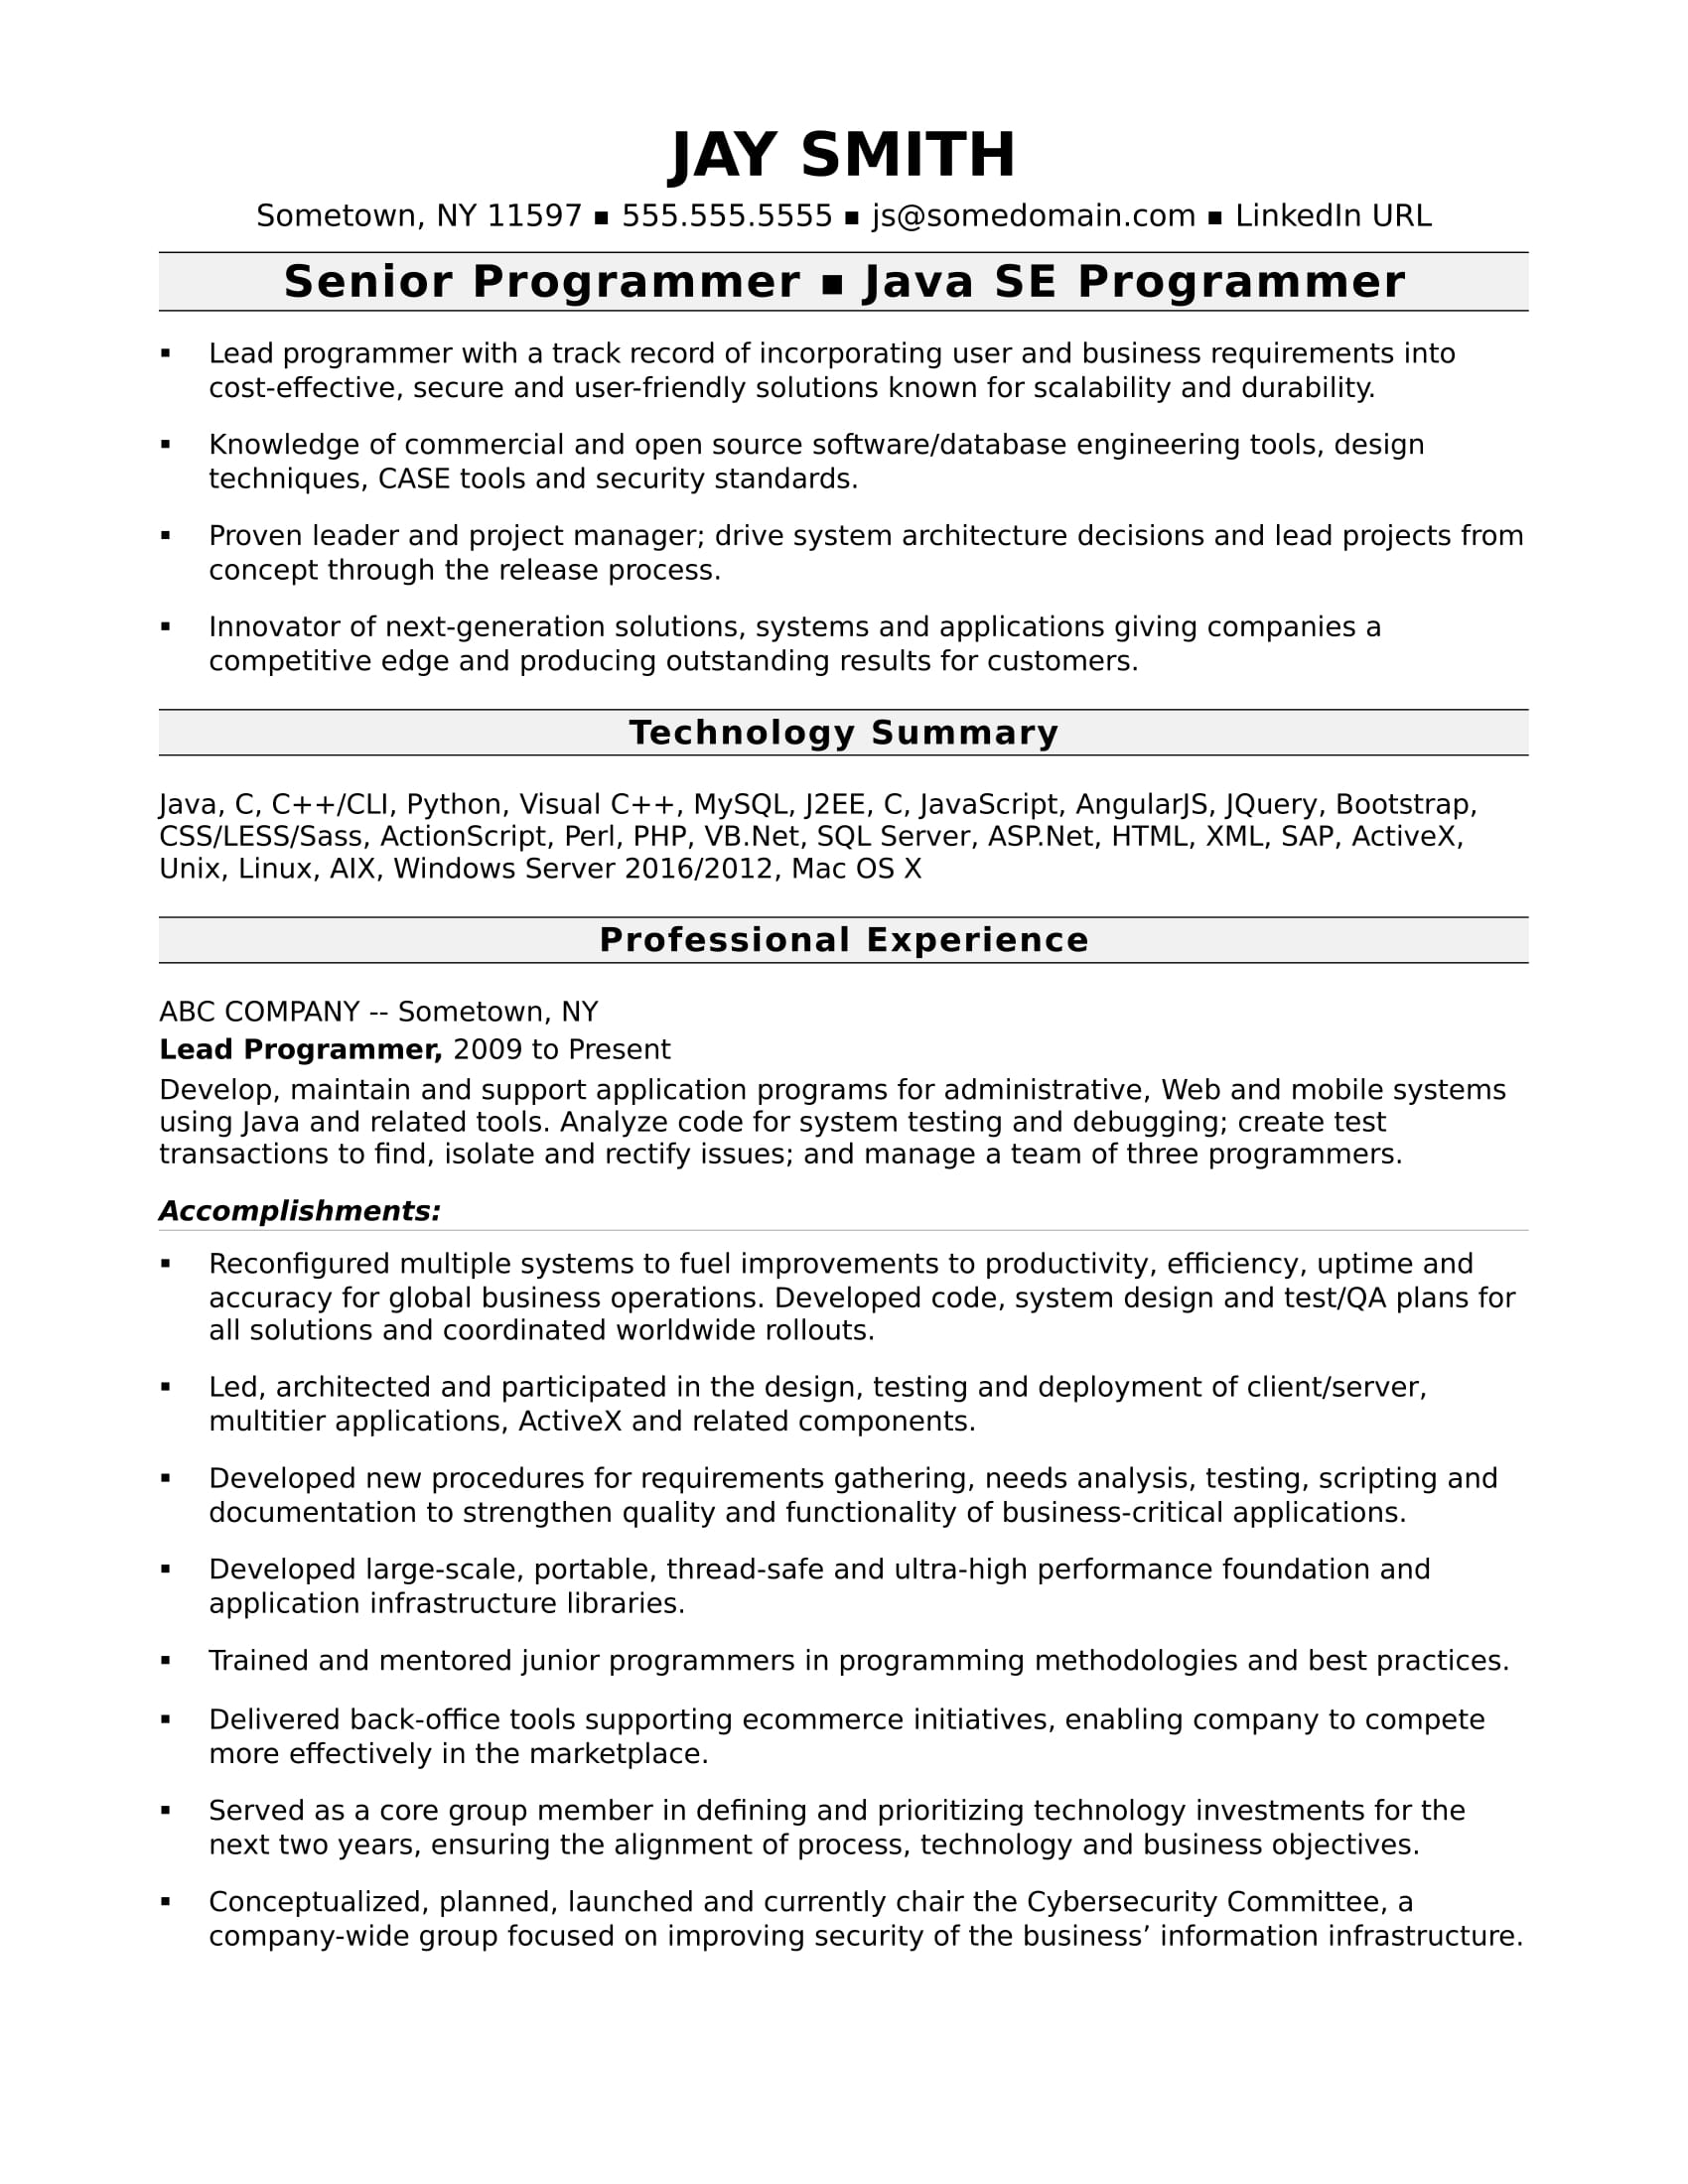 to write resume professional experience work on job description bullets that computer Resume Professional Experience Resume